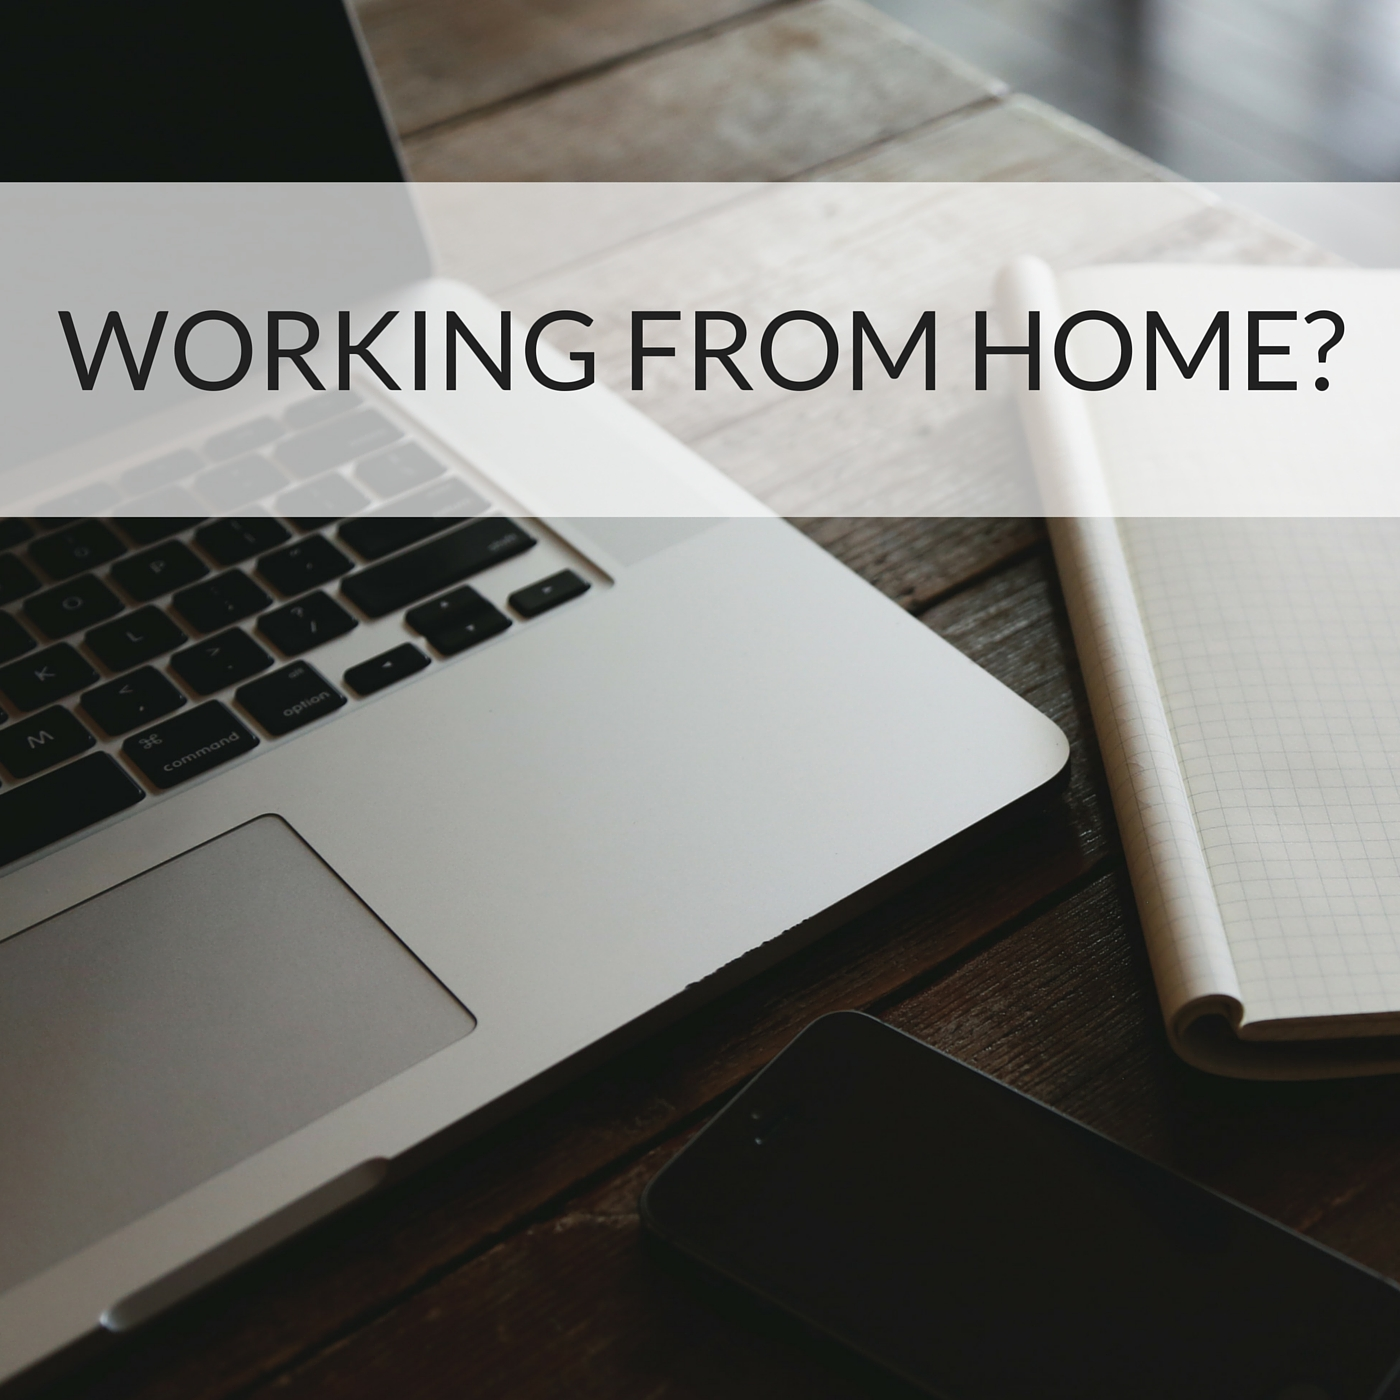 Home, working from home, tools, tech